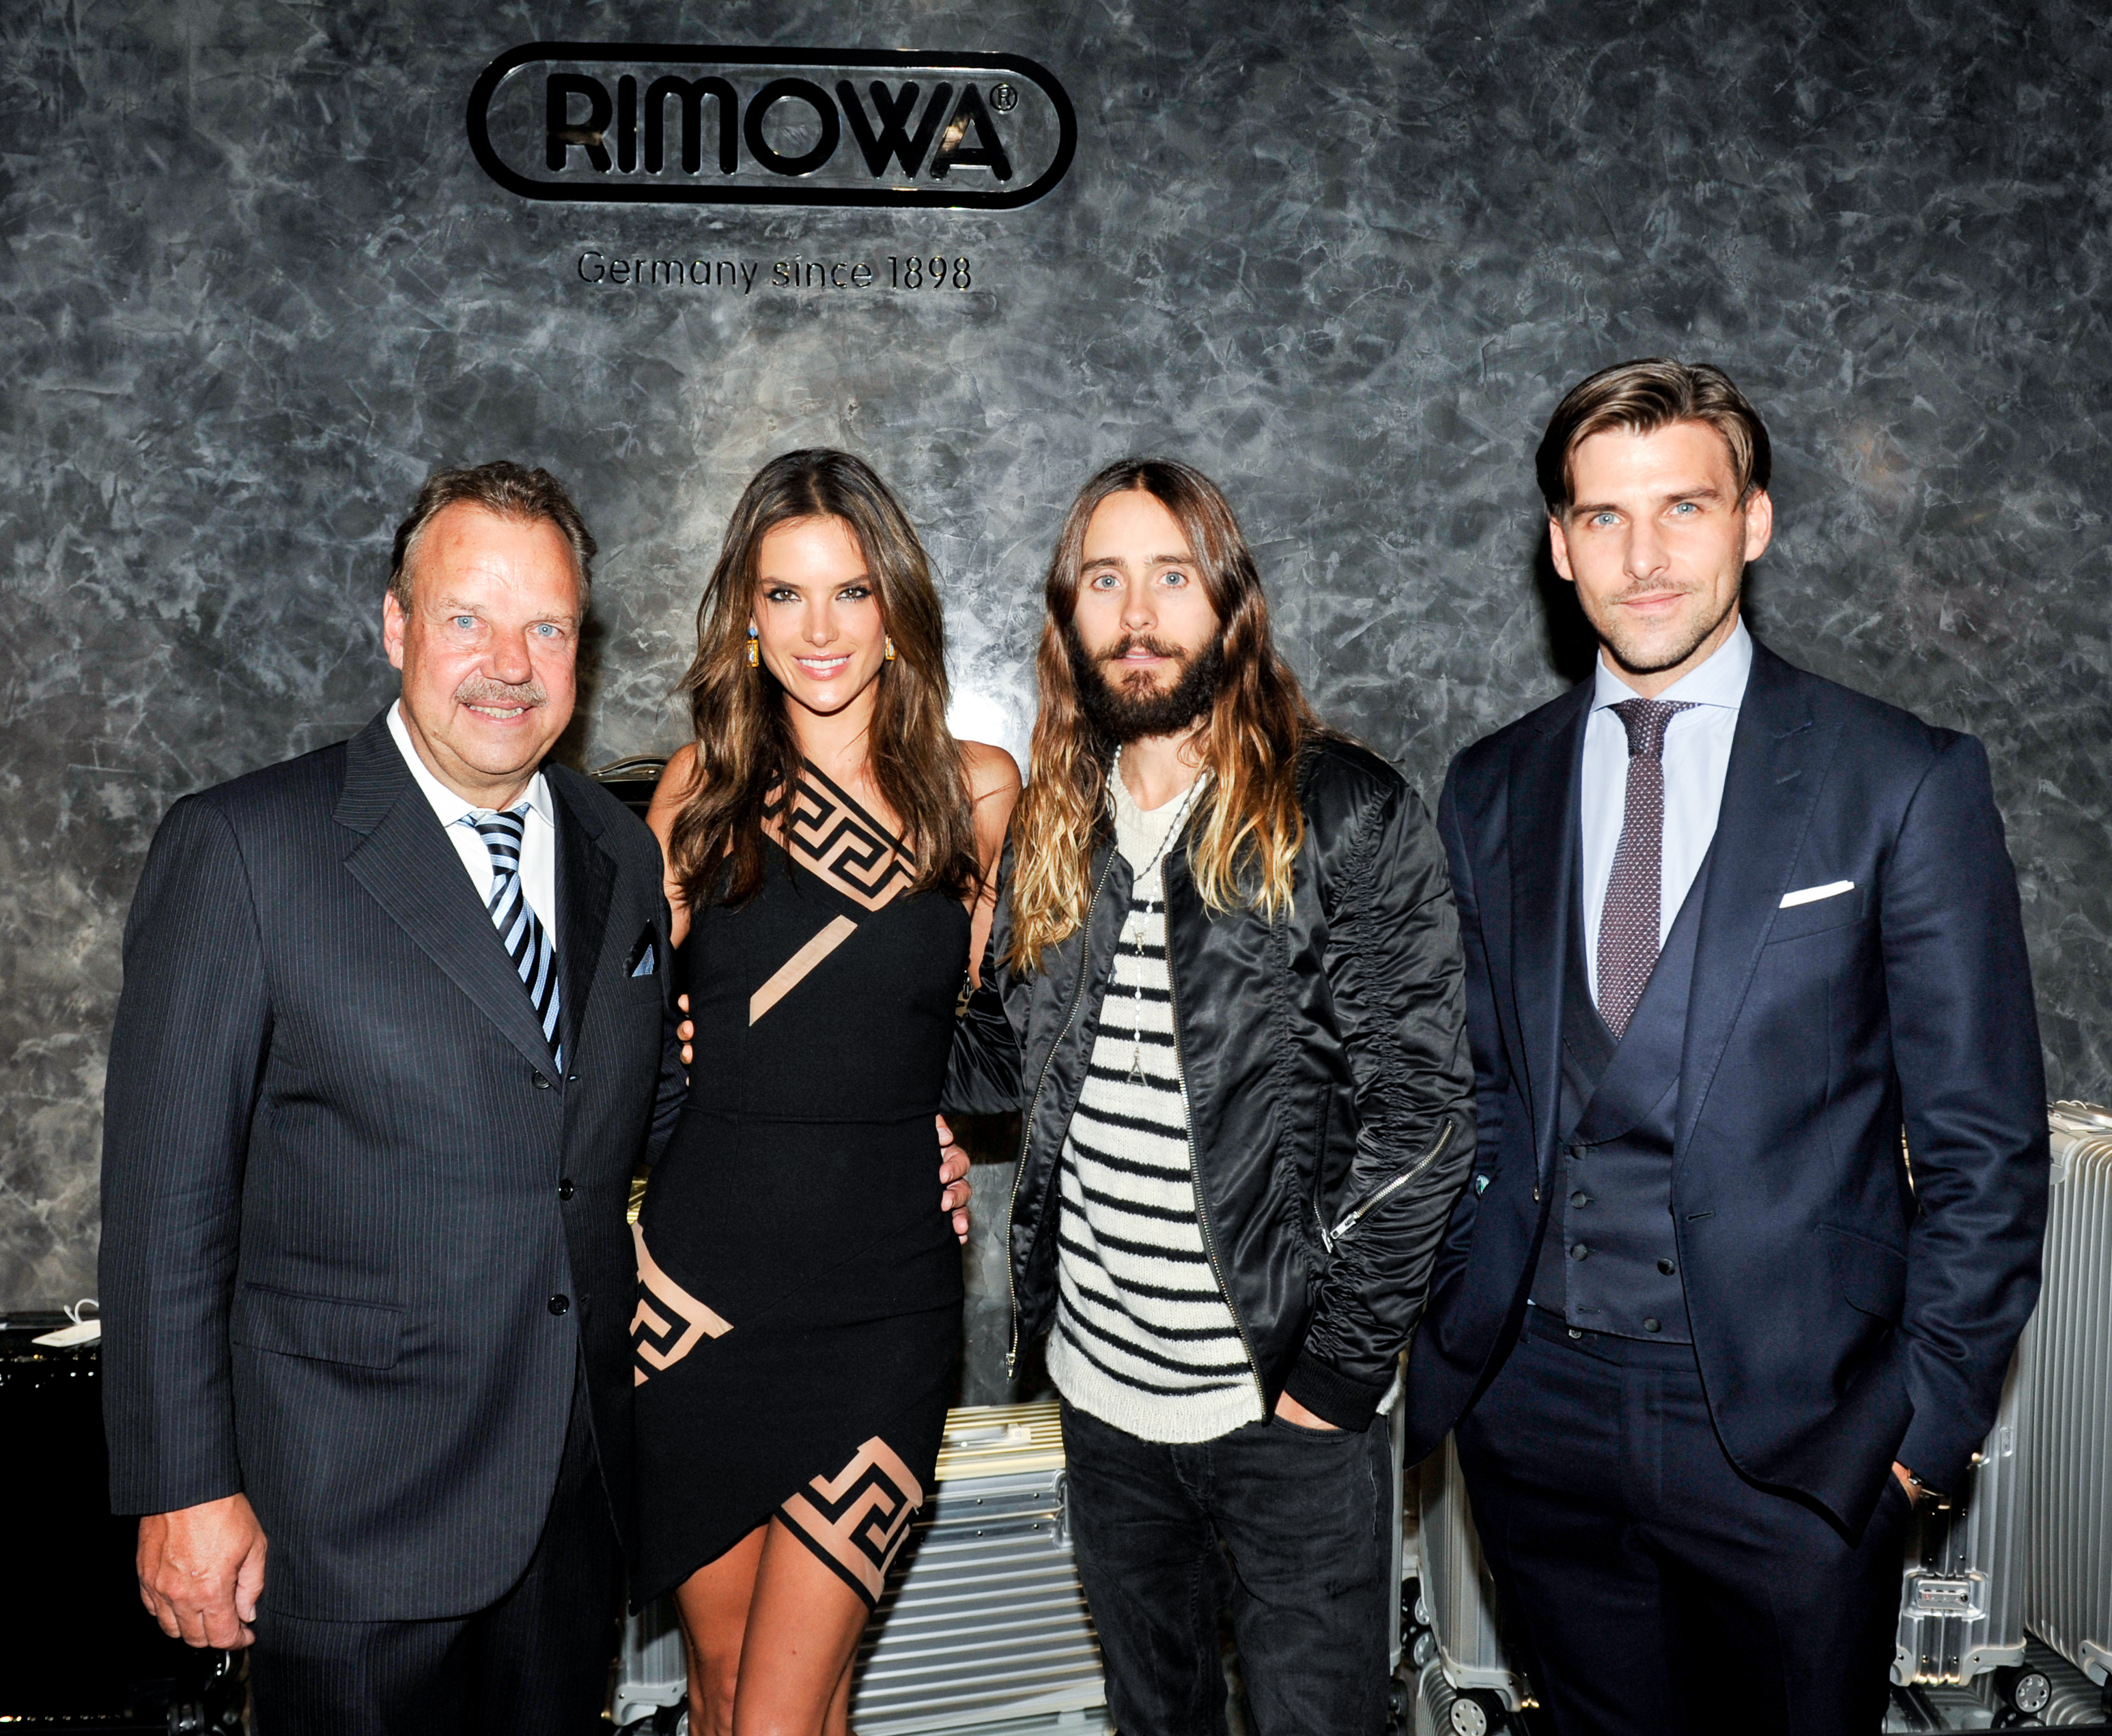 RIMOWA Grand Opening Party